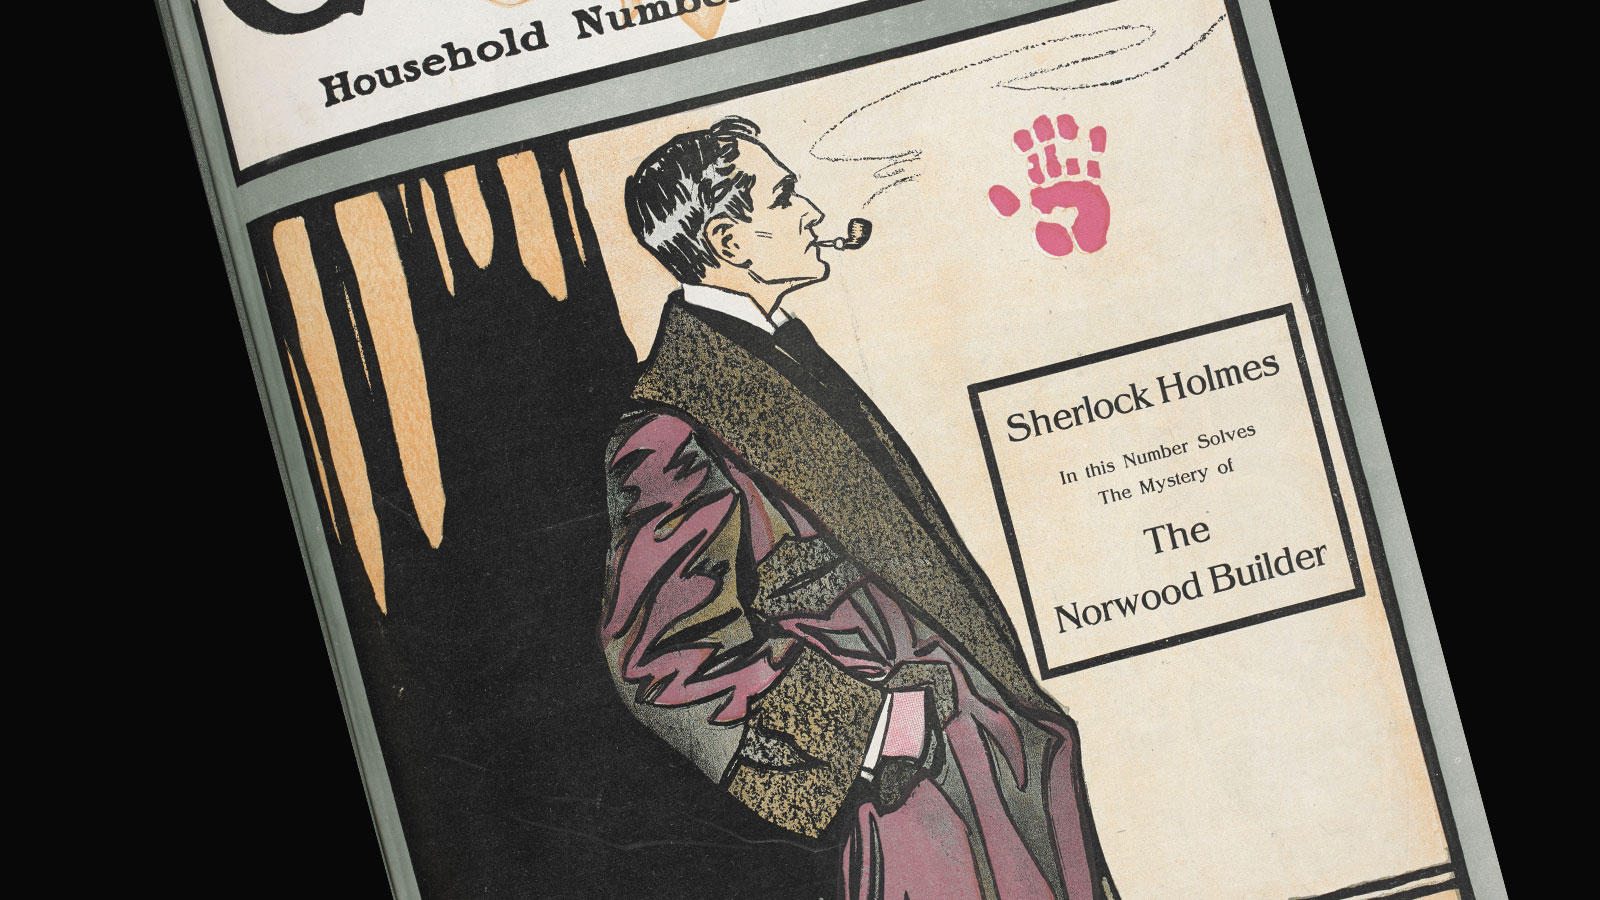 An introduction to Sir Arthur Conan Doyle's Sherlock Holmes